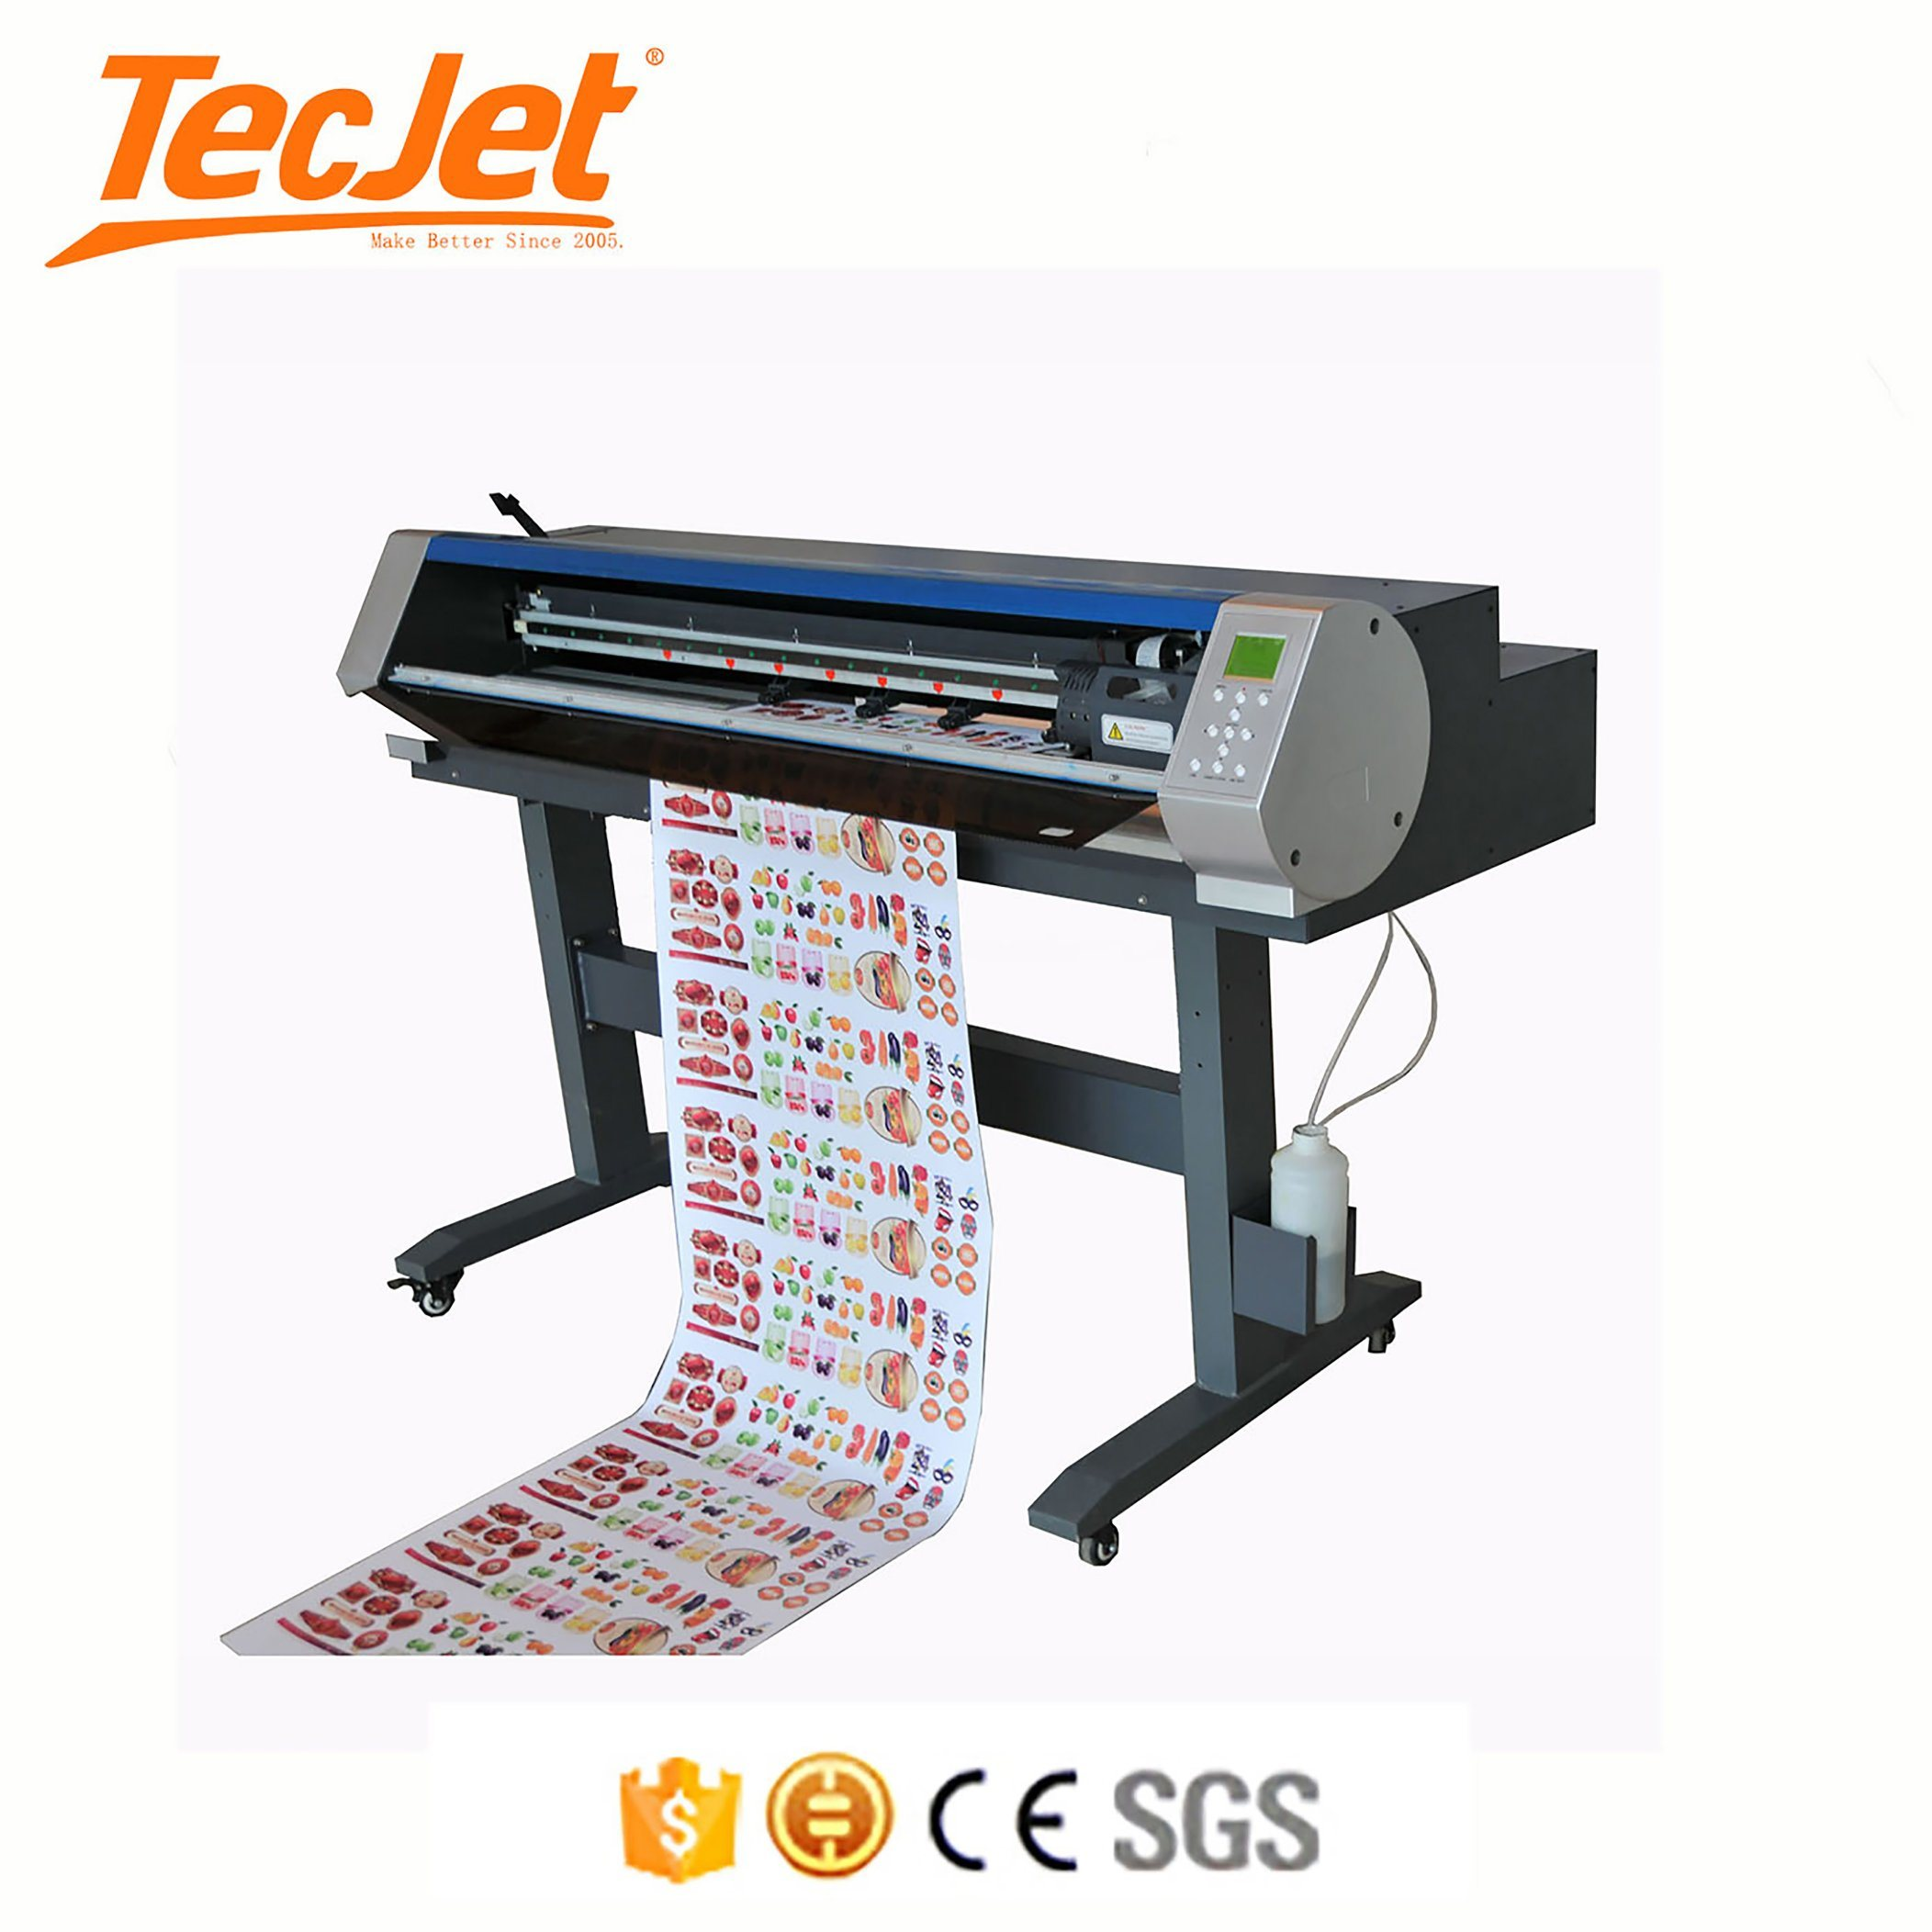 China tecjet digital printer and cutter for vinyl label stickers with dx5 printhead ce approved printing and cutting plotter china cutter printer